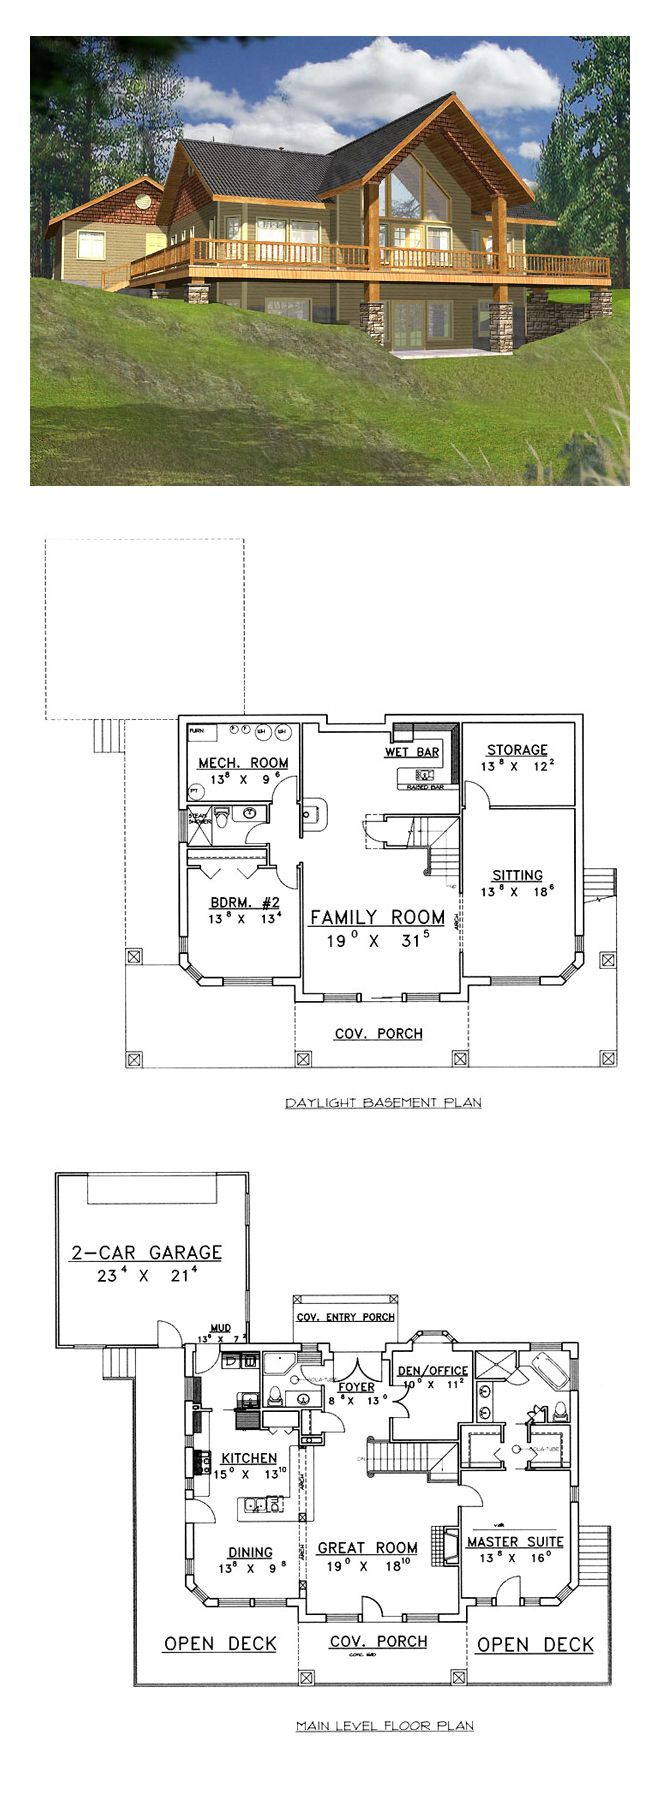 log cabin style cool house plan id chp 33904 total living area